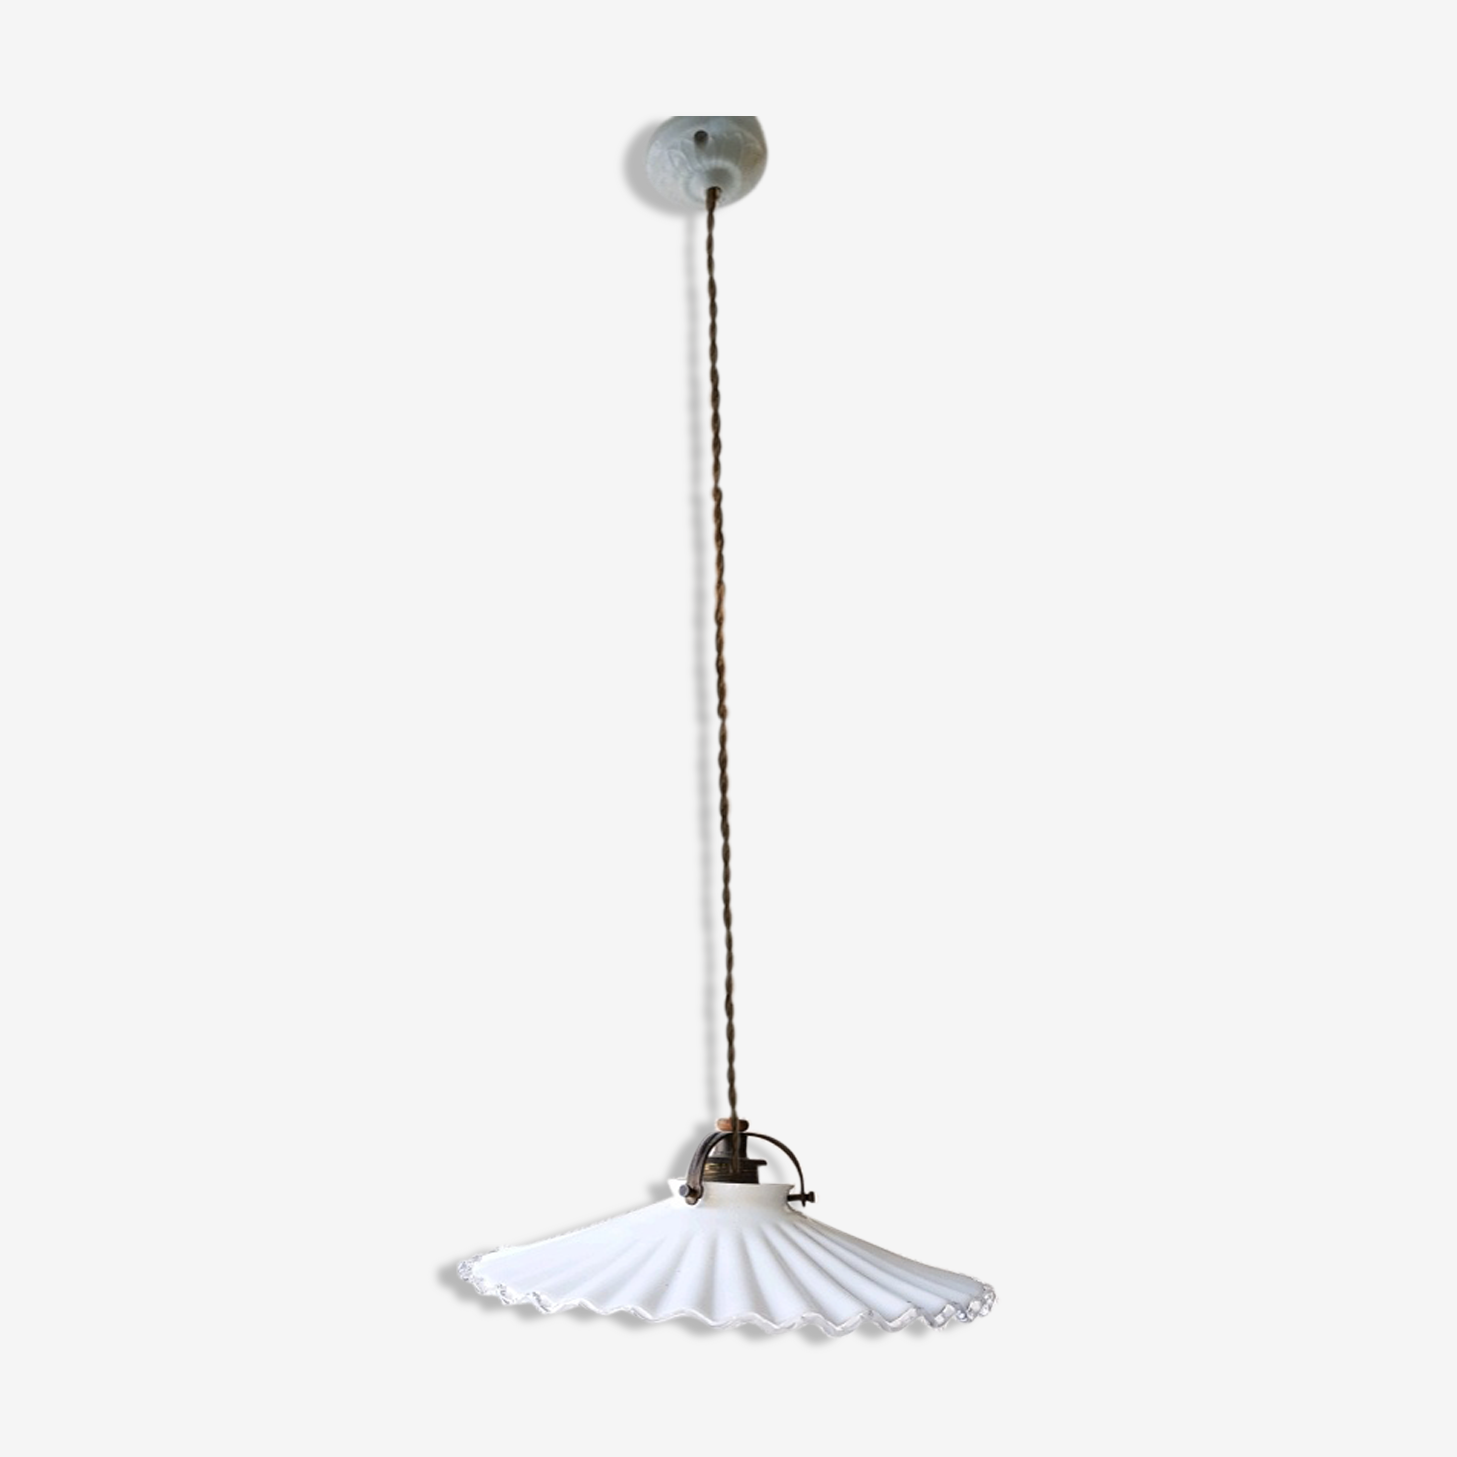 Hanging in wavy white glass